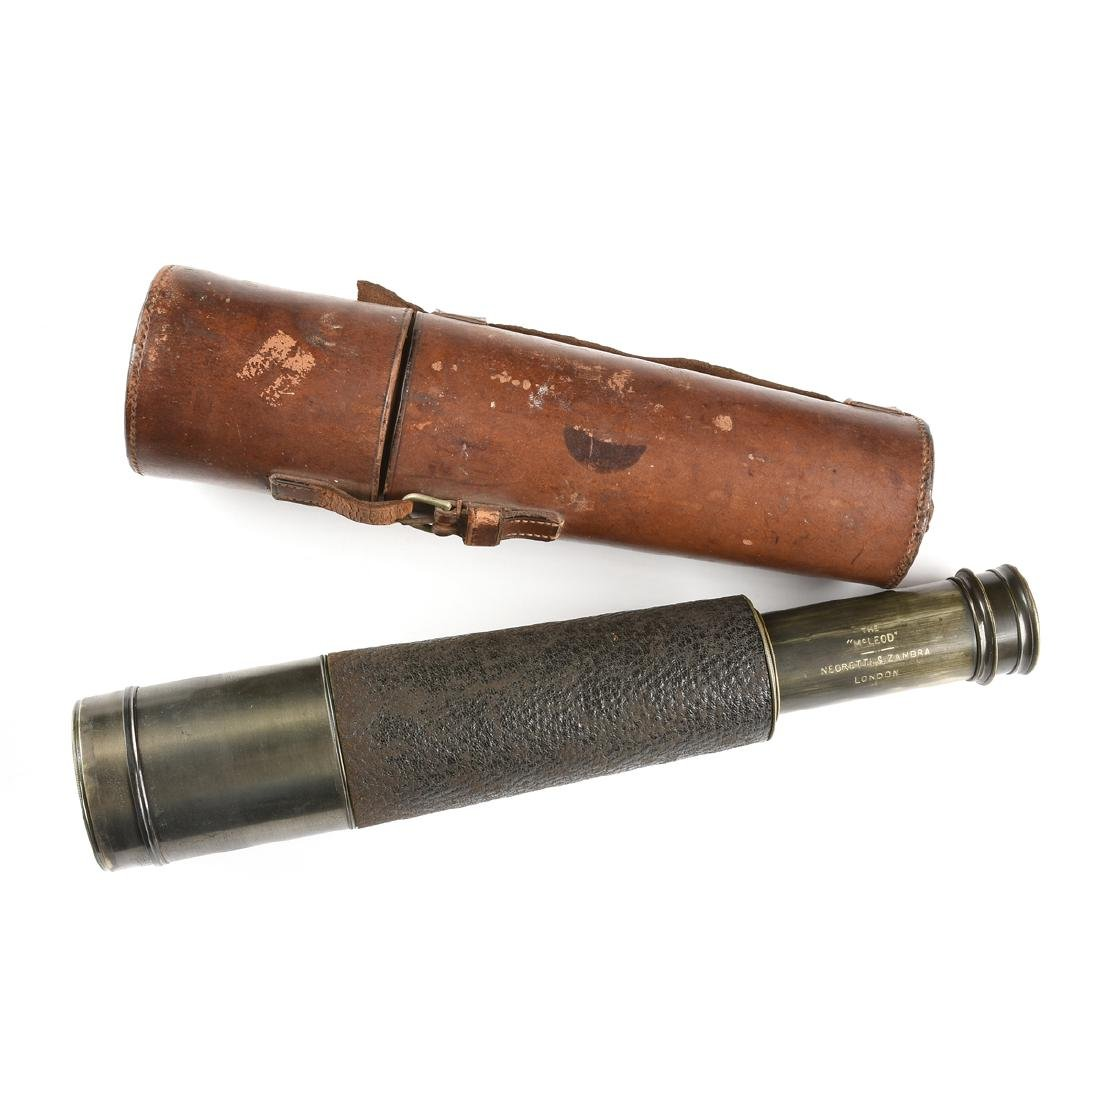 "A NEGRETTI & ZAMBRA DEER STALKING BRASS TELESCOPE, ""THE"